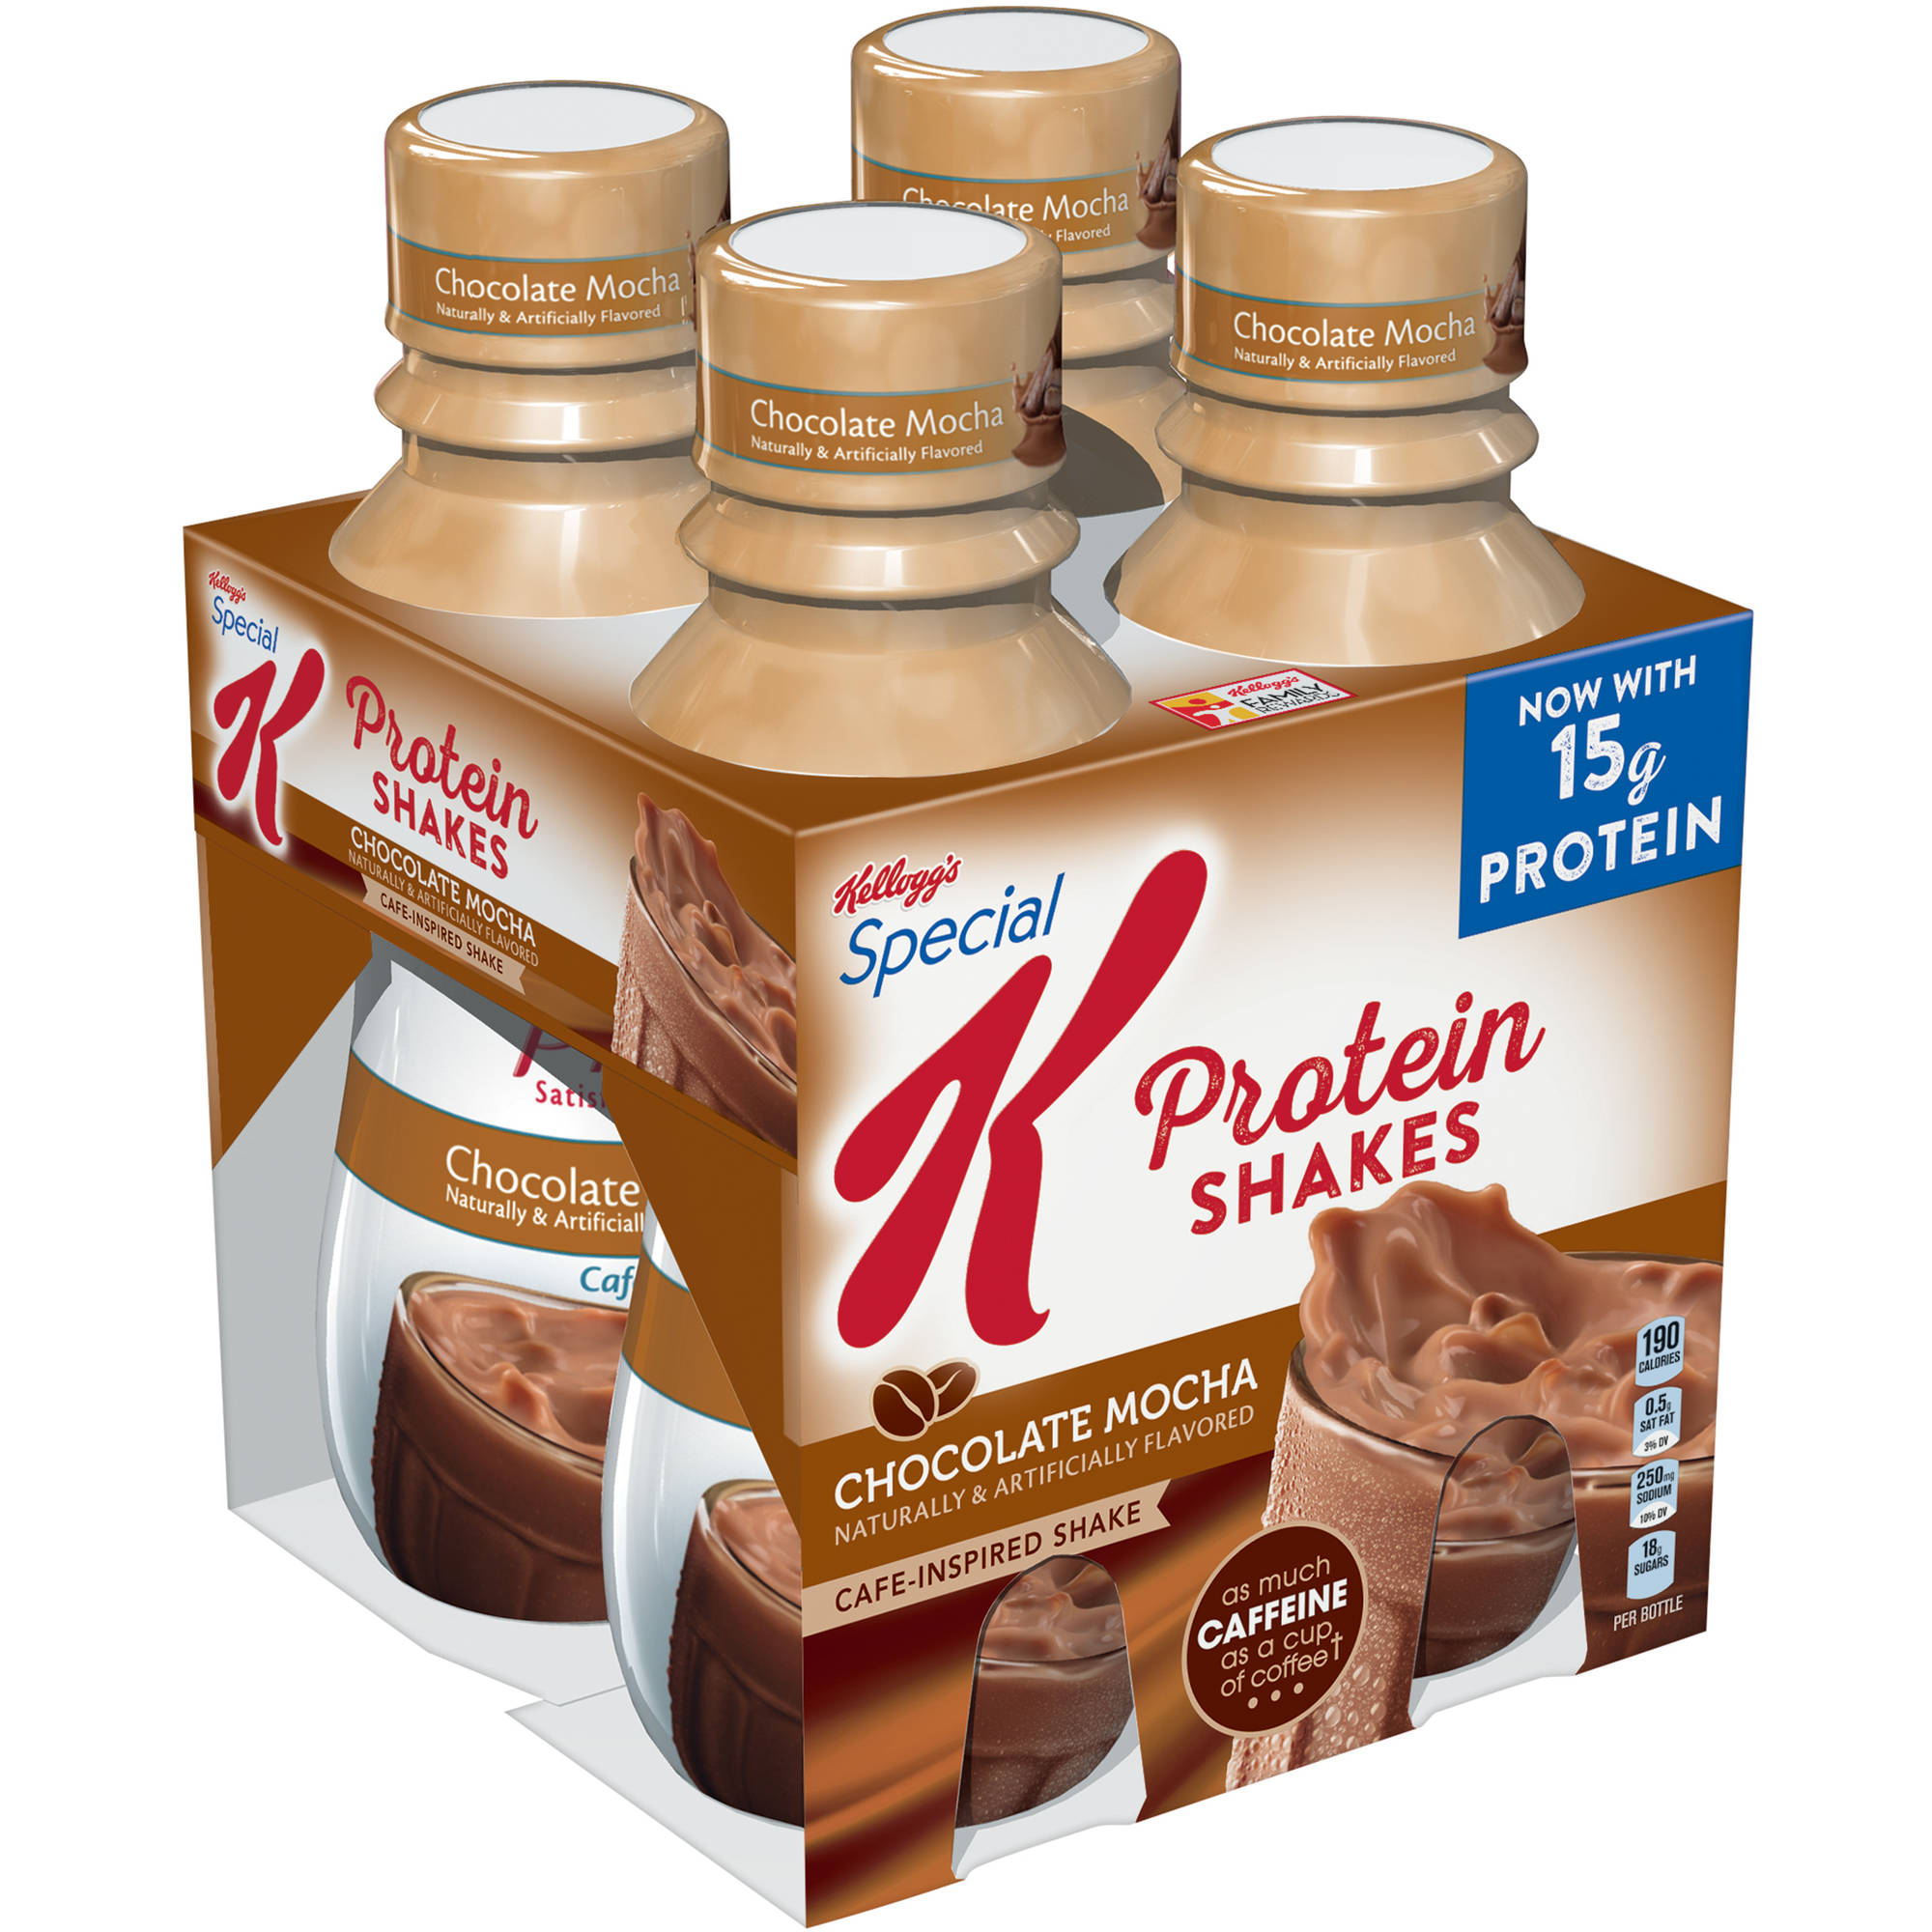 Kellogg's Special K Protein Chocolate Mocha Cafe-Inspired Shakes, 10 fl oz, 4 pack